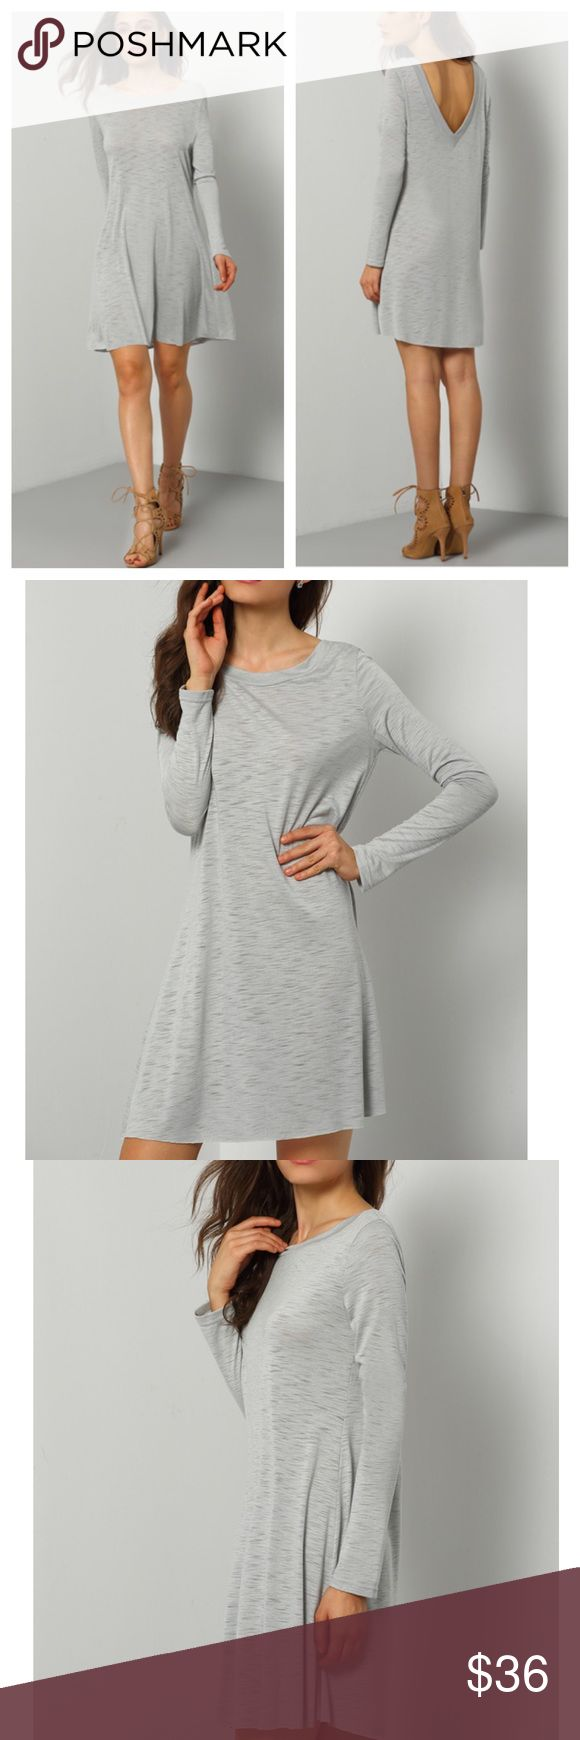 NWT Grey L/S Dress/Tunic w/Deep V-Back Grey Baggy Long Sleeve Casual Dress/Tunic with V-Back detail. Great with boots, heels or flats!  Dresses Length : S:87.5cm, M:88.5cm, L:89.5cm Bust(cm) : S:96cm, M:100cm, L:104cm Color : Grey Sleeve Length : Long Sleeve Dresses Length : Short Type : Shift Neckline : Round Neck MMC Dresses Long Sleeve